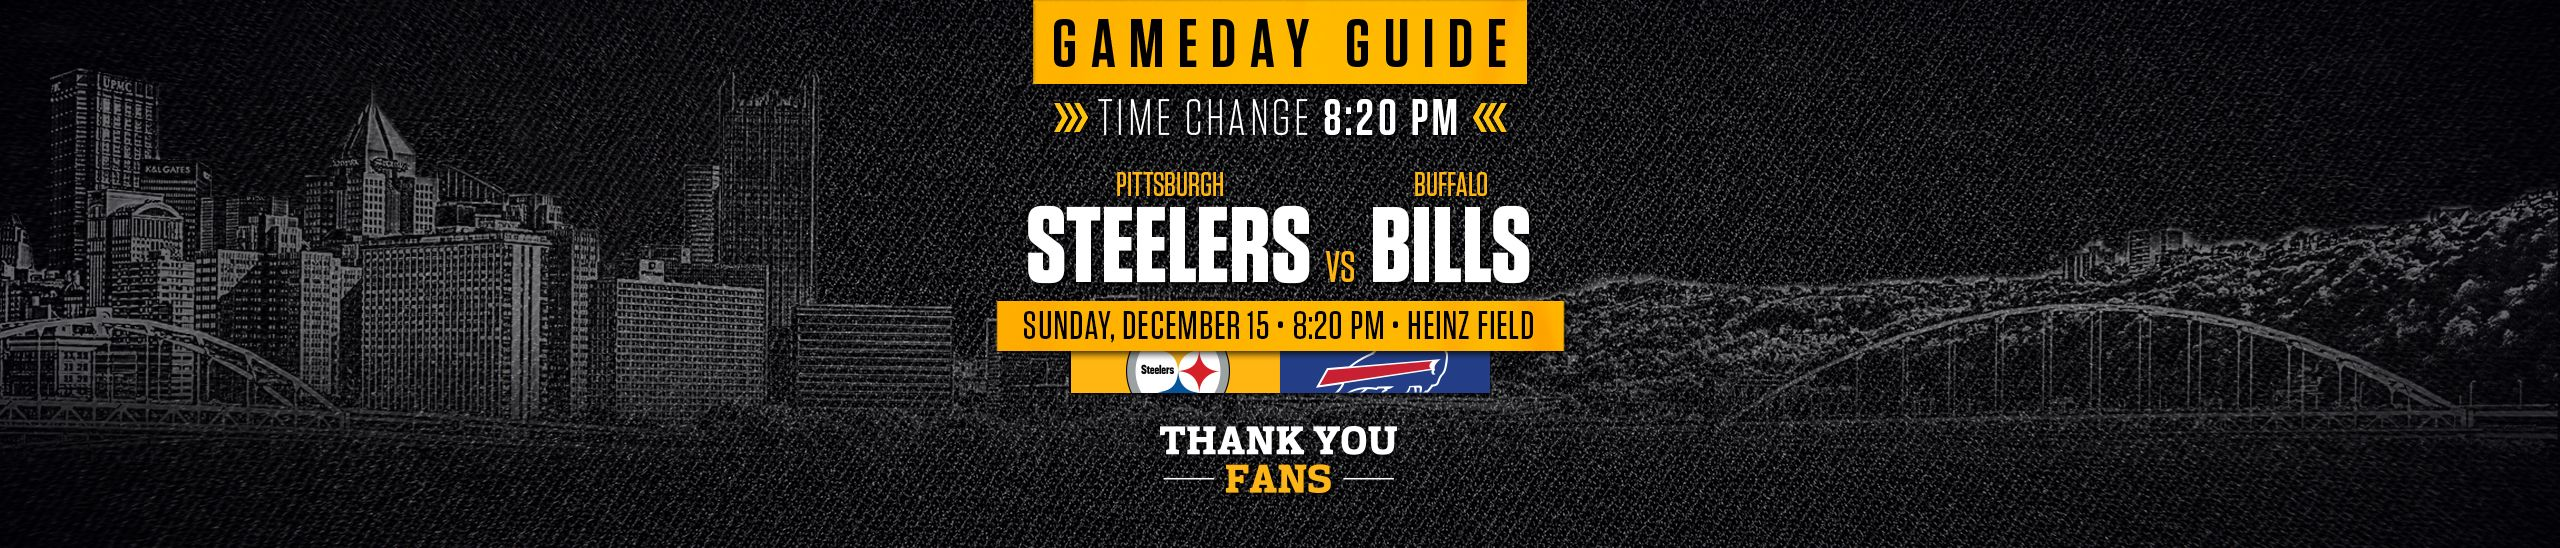 STL_GamedayGuide_Steelers.com_2019_Bills